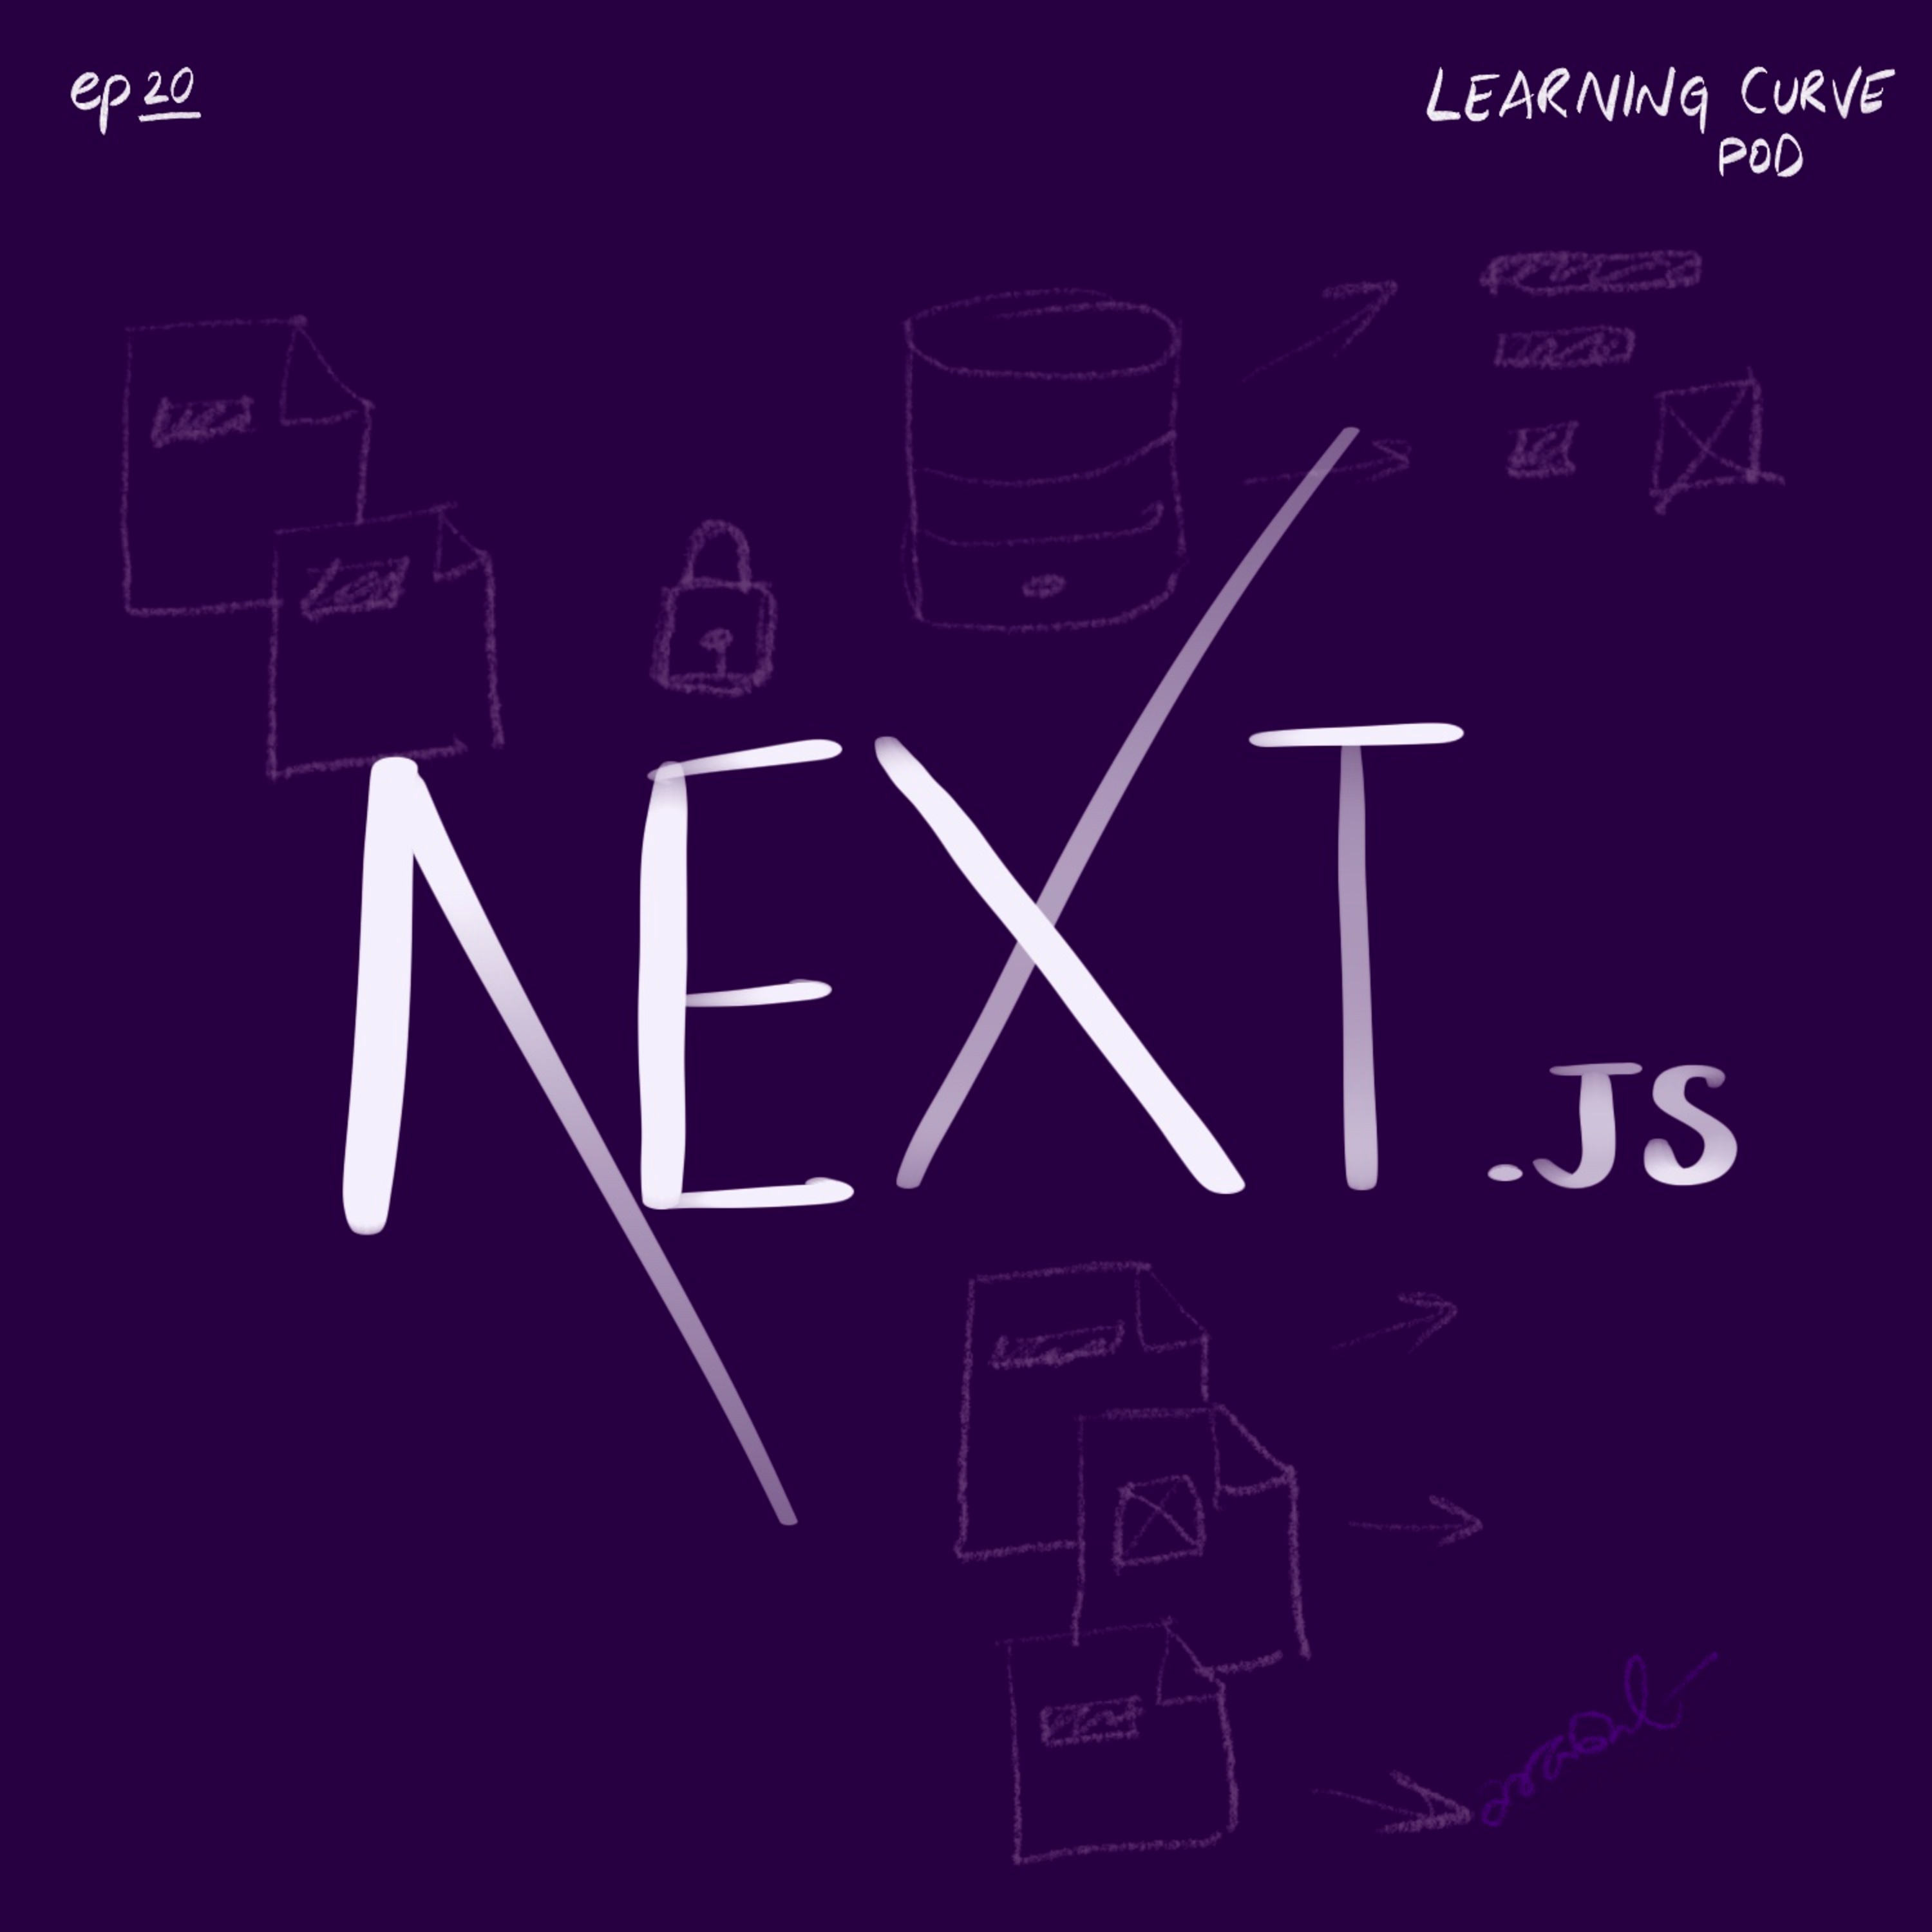 Let's talk Next JS 🚀 cover